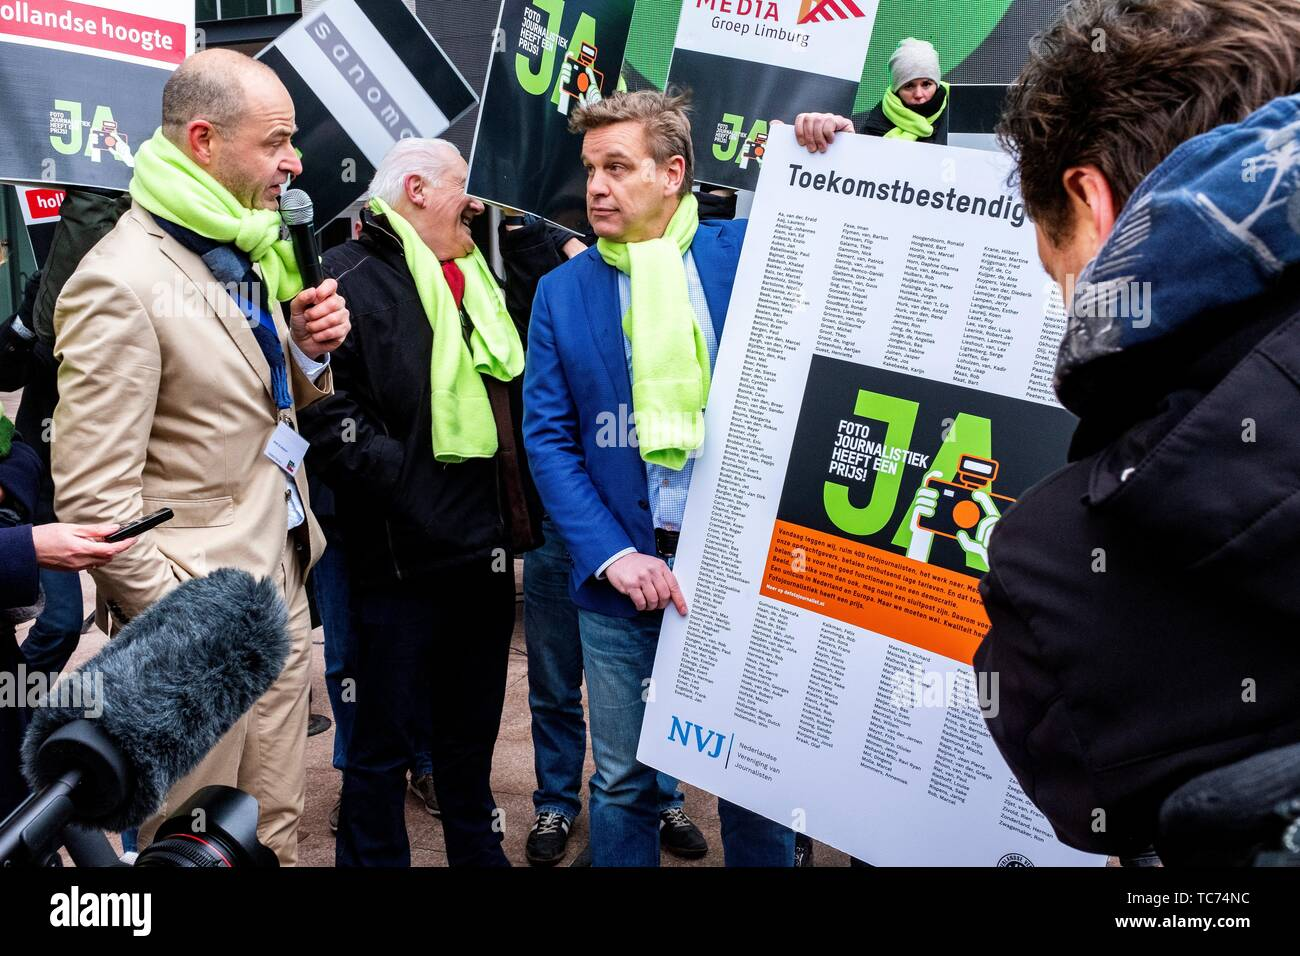 The Hague, Netherlands. Photo-Journalists and Photographers went On Strike, January 2019, against the ever declining prices in Photo-Journalism on - Stock Image